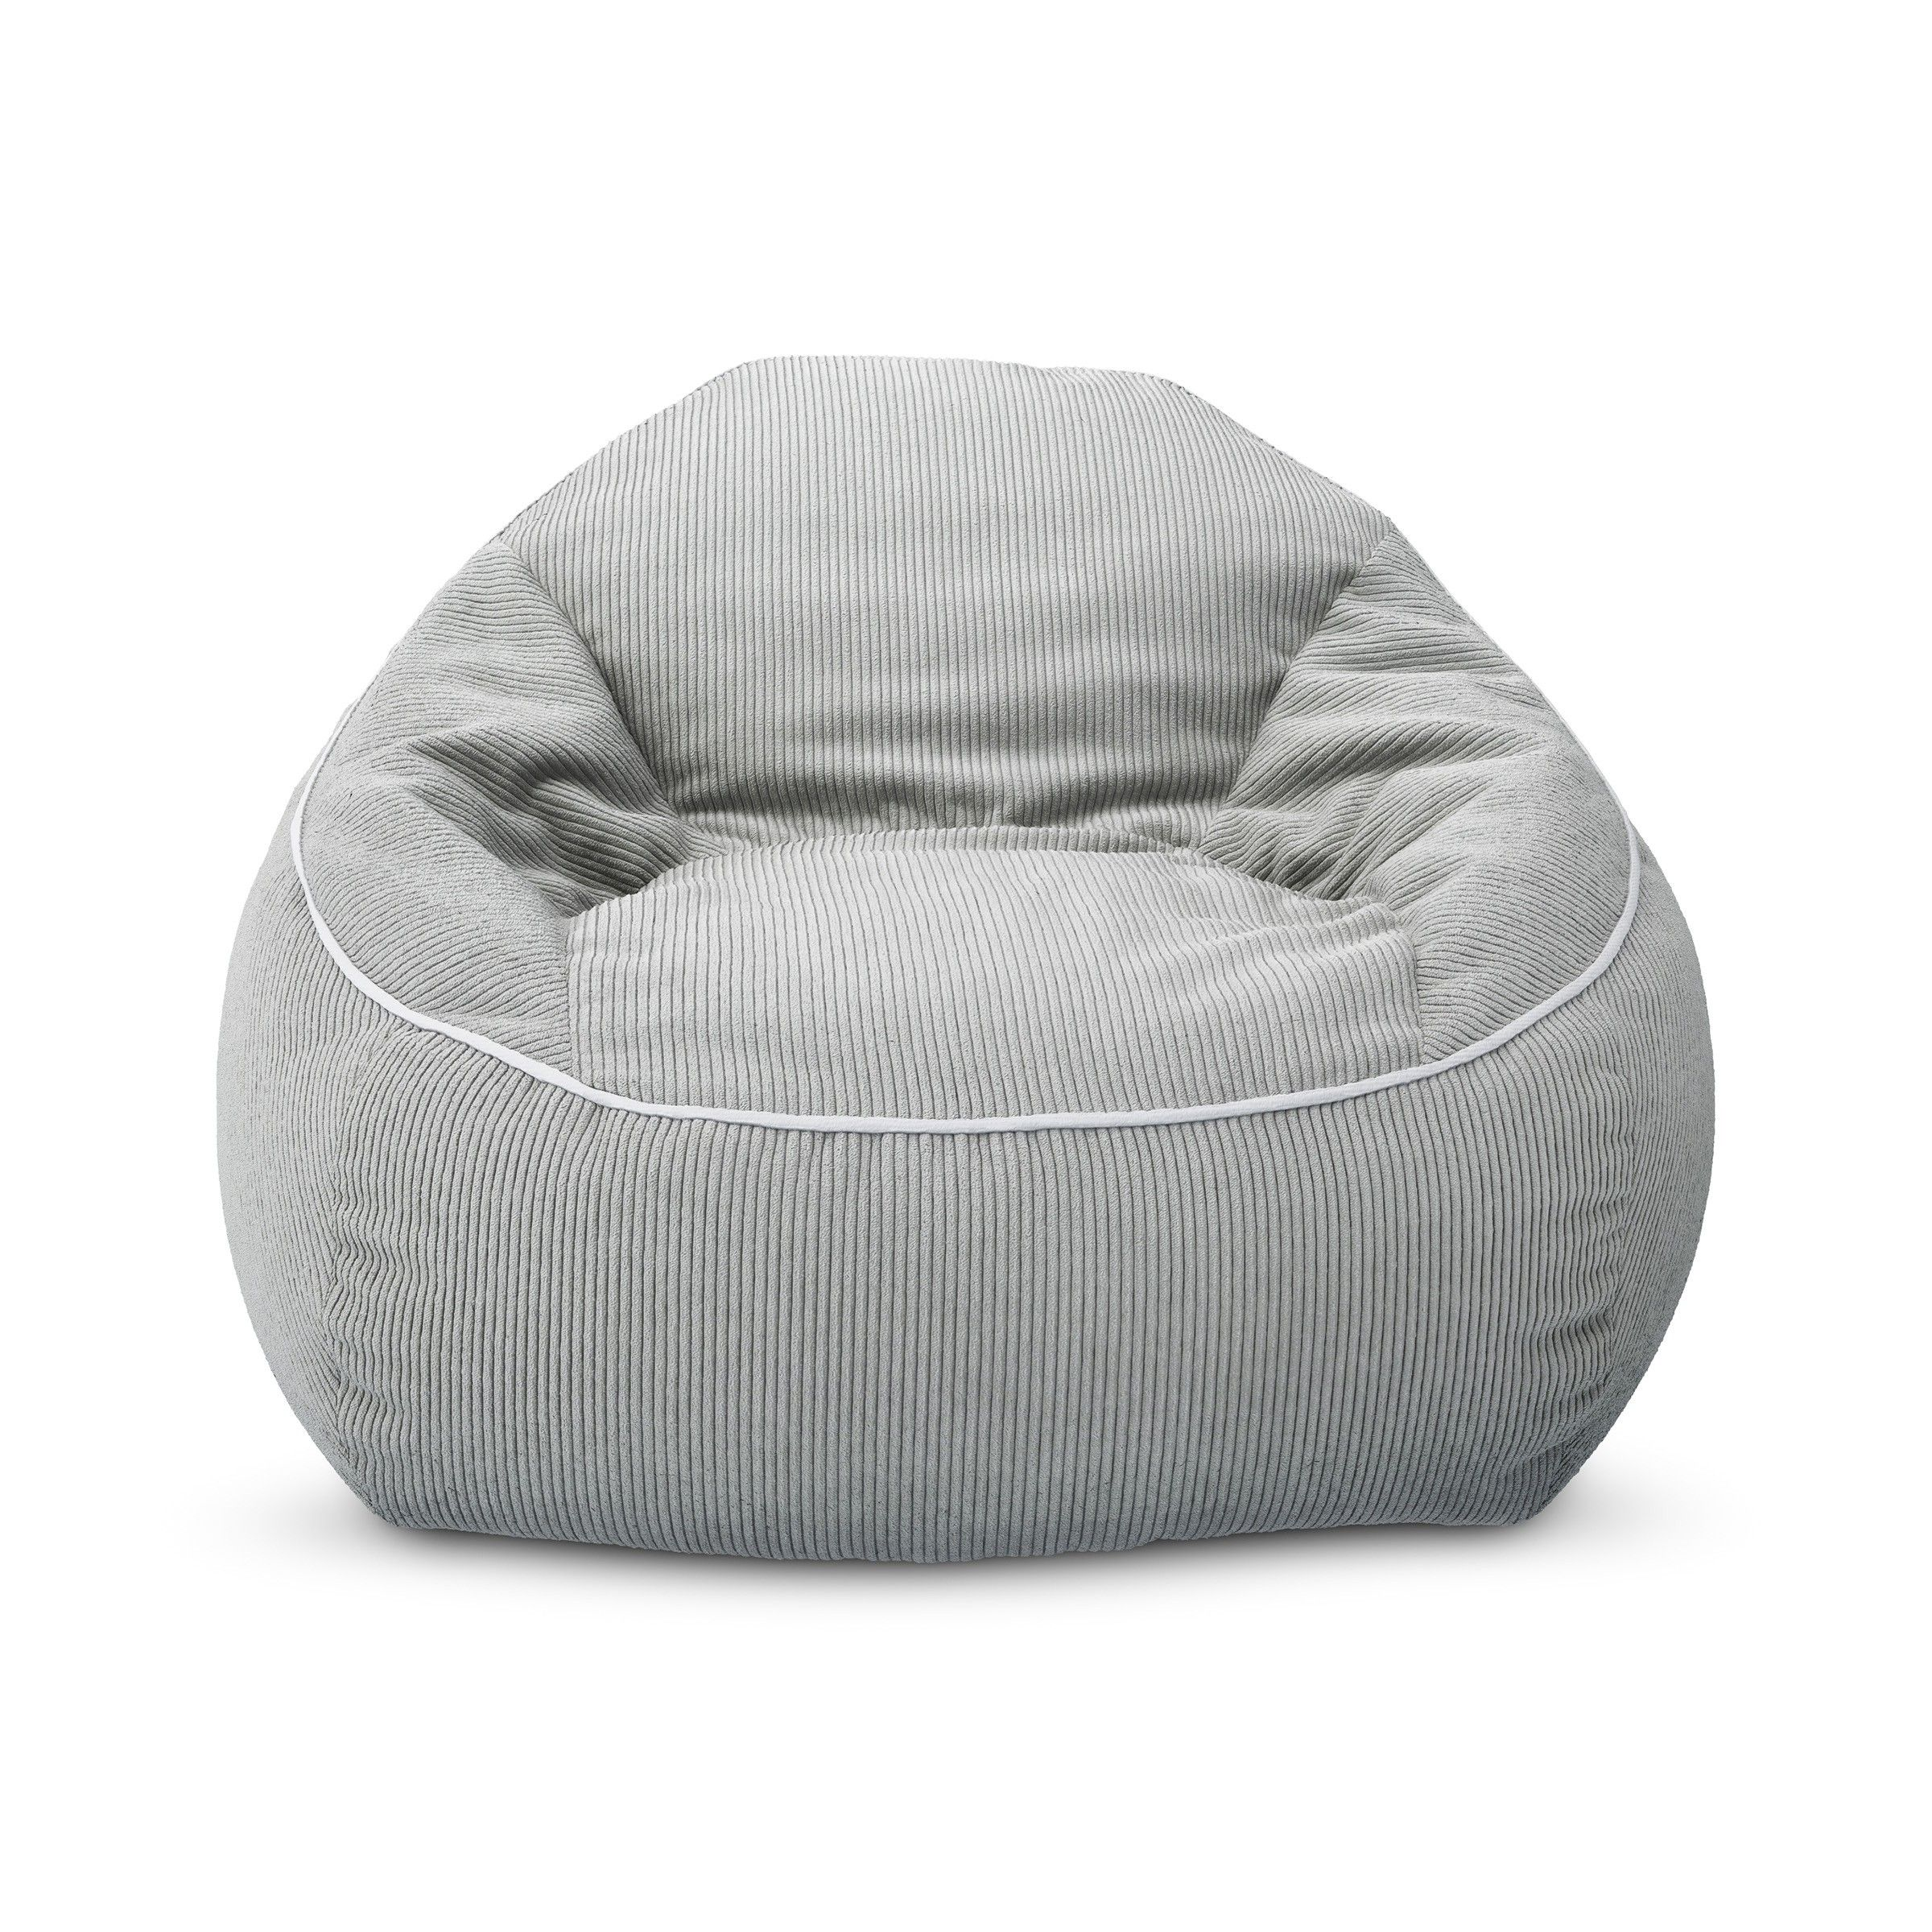 Extra Large Bean Bag Chairs Add A Little Kid Friendly Seating To Your Childs Bedroom